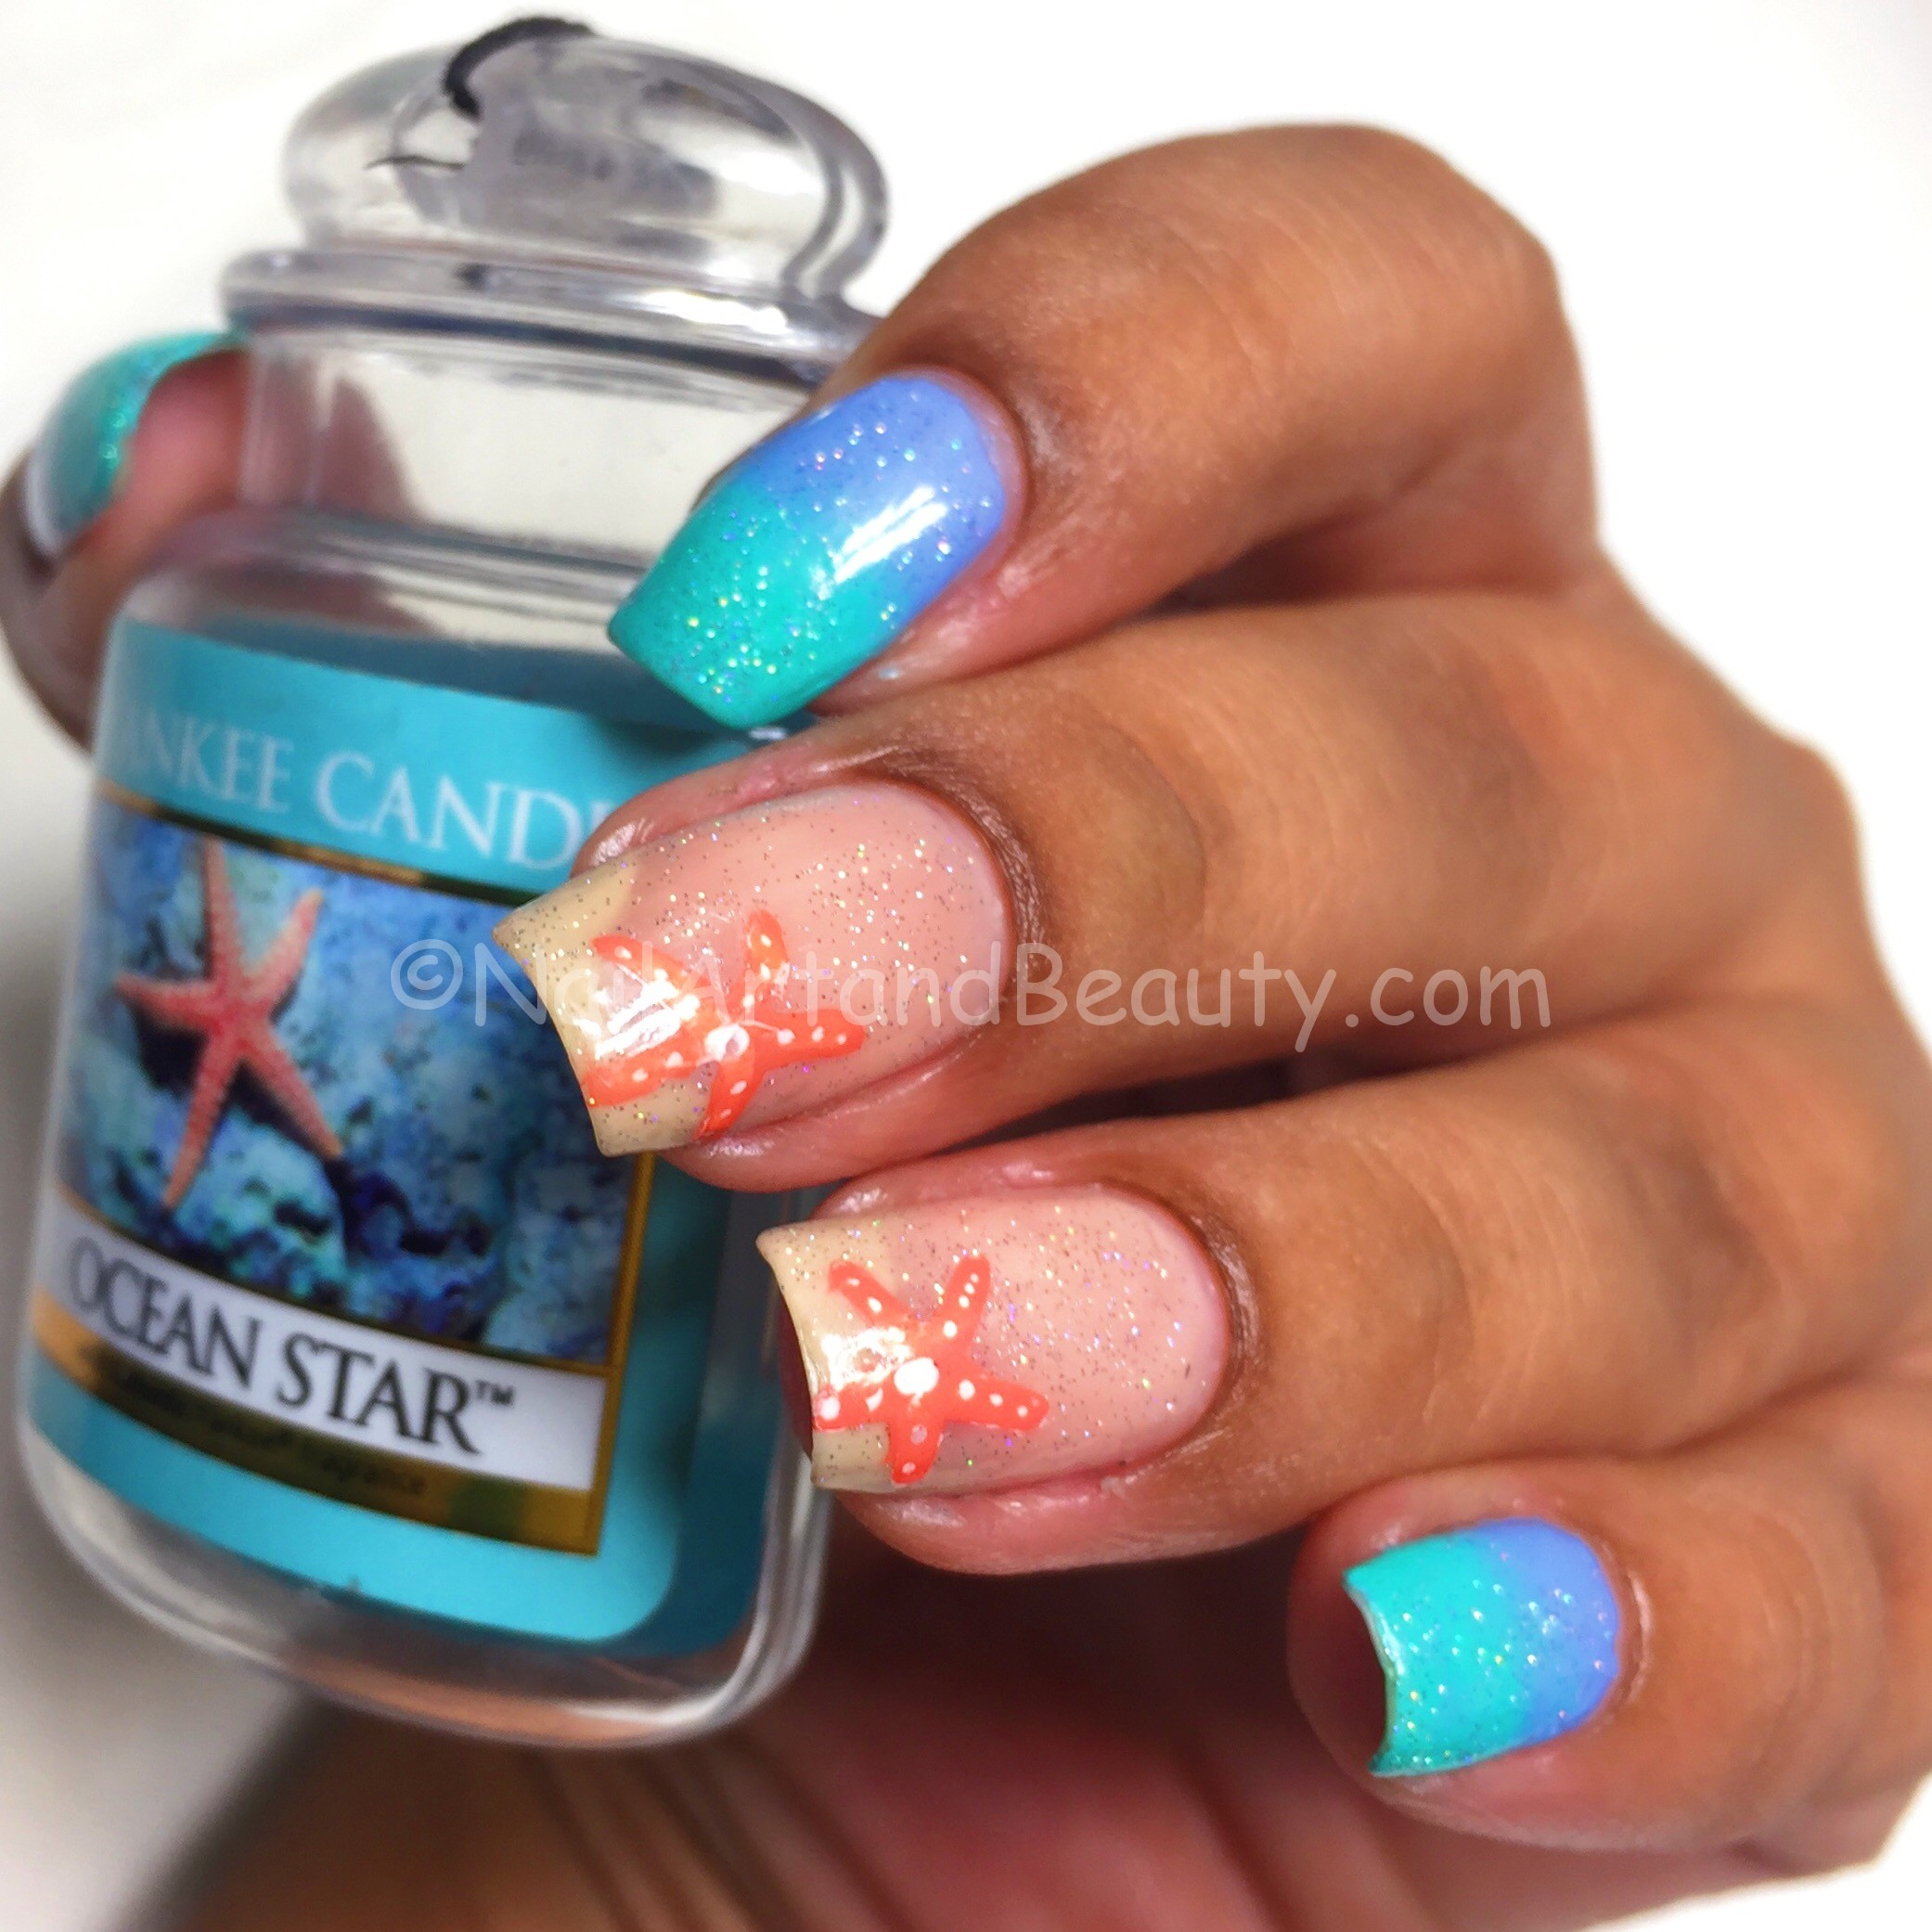 Yankee Candle Inspired Nails